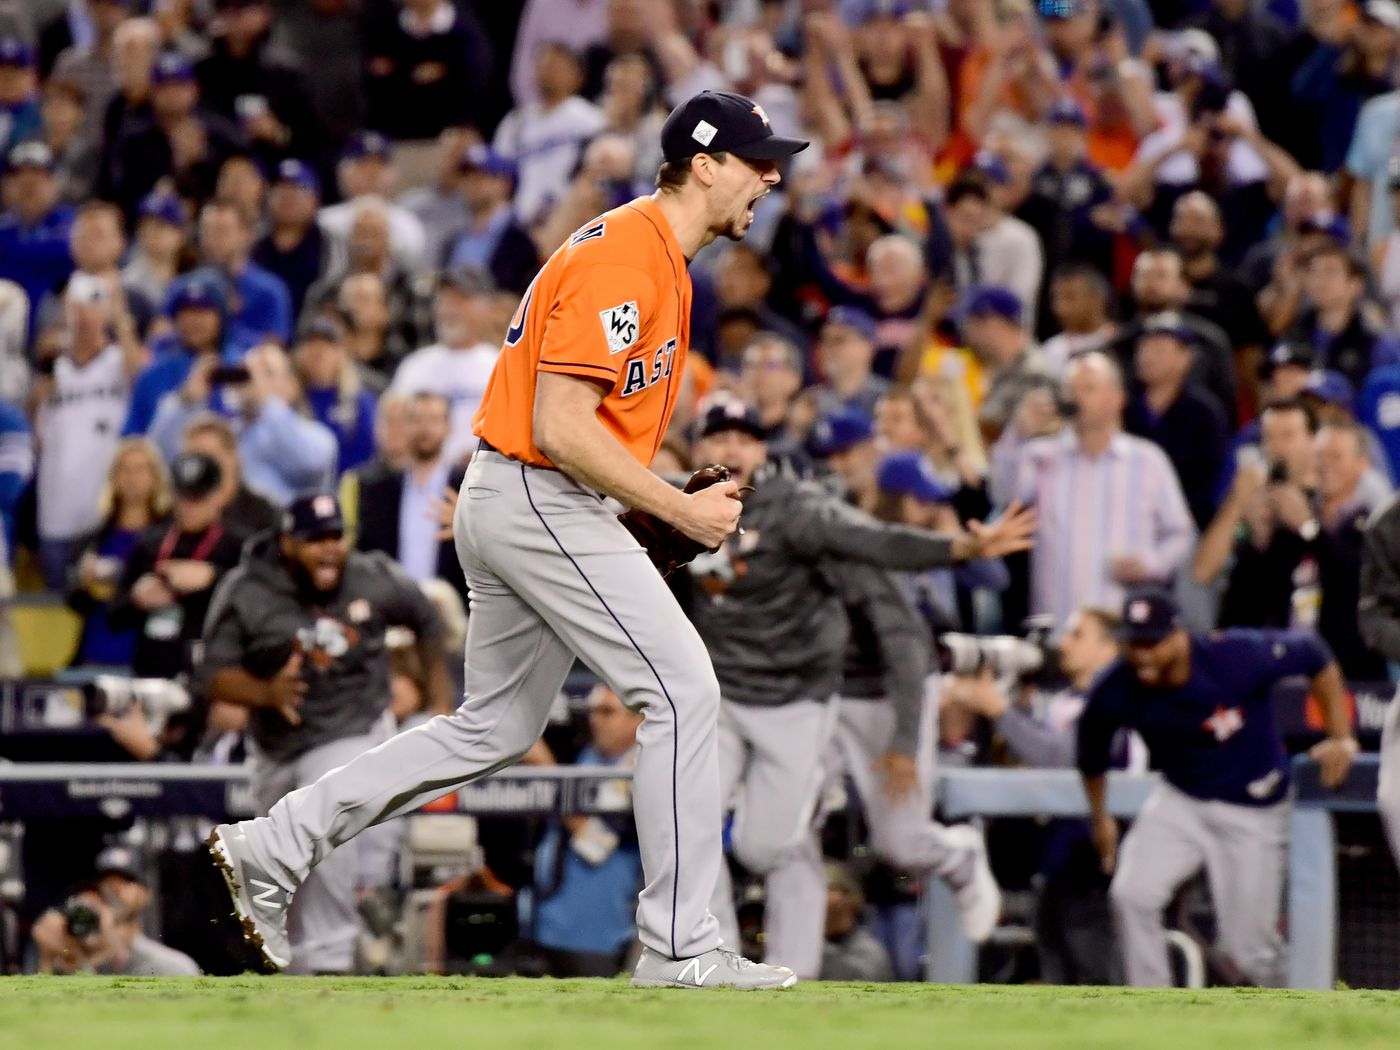 The astros and aj hinch won the world series without a bullpen the astros and aj hinch won the world series without a bullpen sbnation malvernweather Gallery